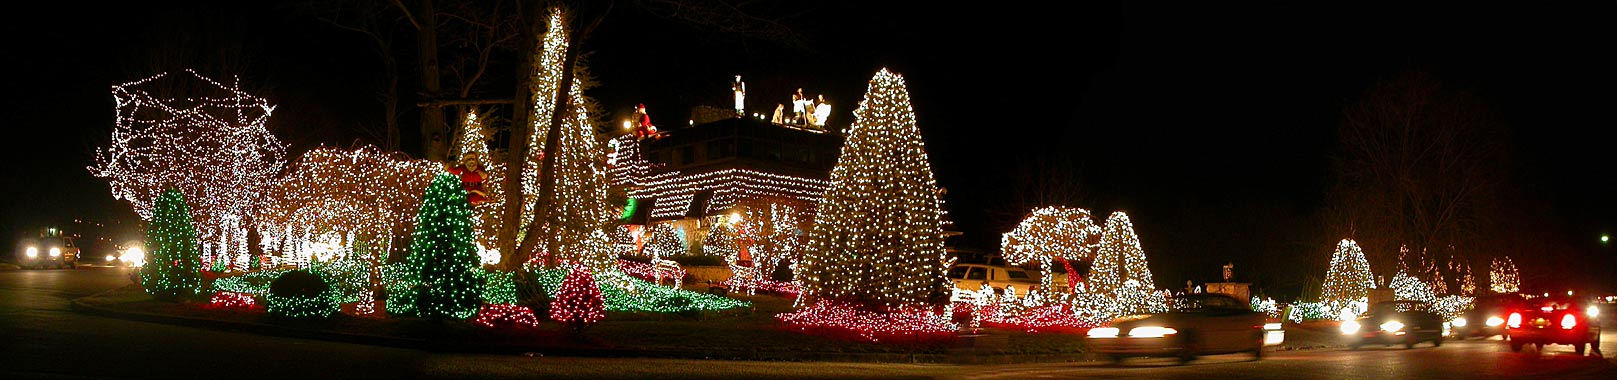 elvis house in mahwah christmas lights corner view